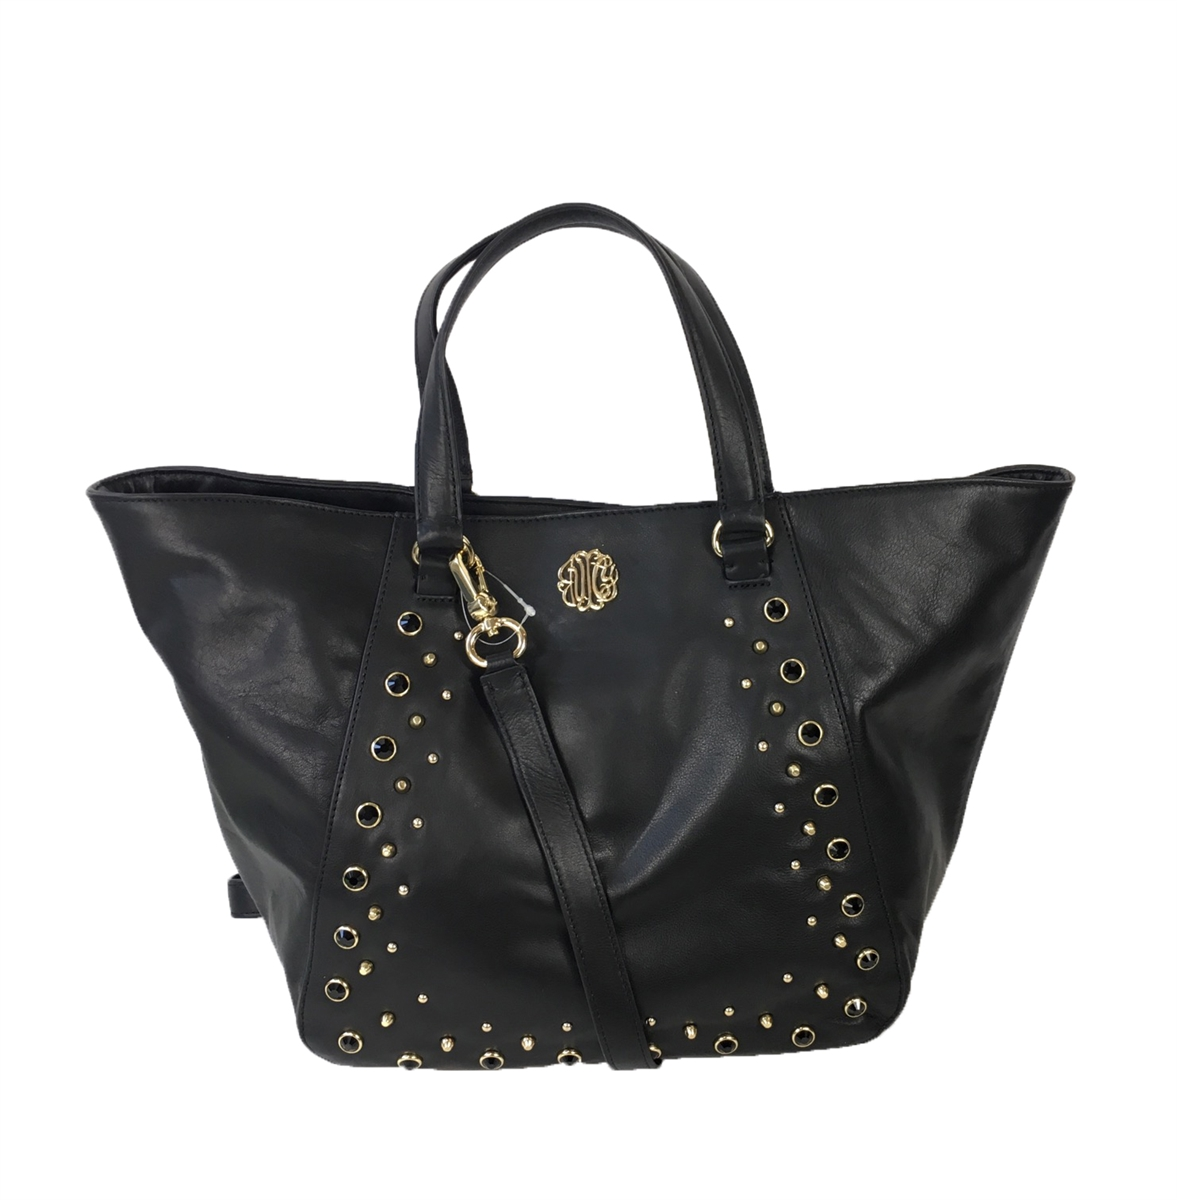 Juicy Couture Hollywood Leather Large Tote Bag, Black